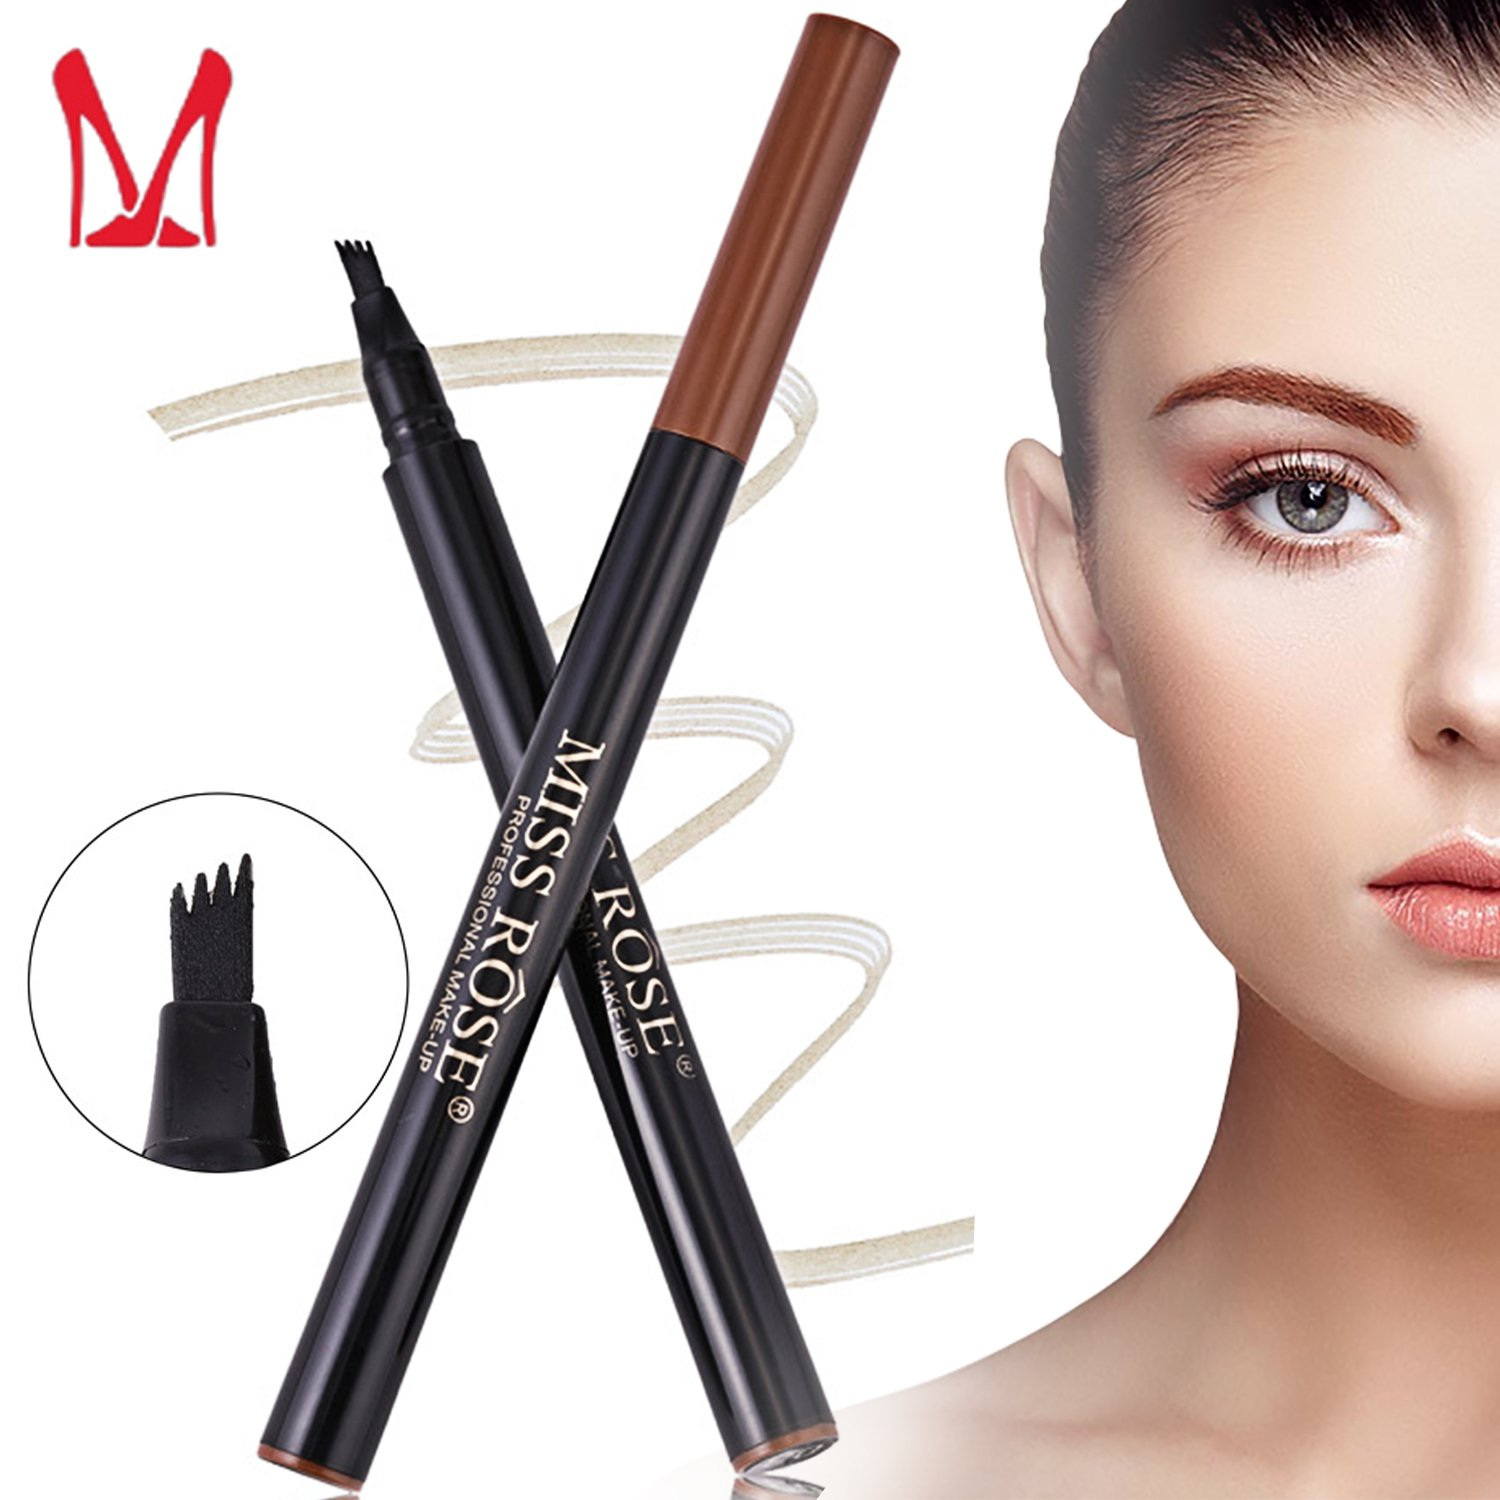 Ladygo 3D Eyebrow Tattoo Pen, Microblading Eyebrow Marker Pencil 4 Fork Tips Liquid Blonde Eye Makeup, Long-lasting Waterproof Smudge Proof Natural Look (03# - Chestnut) YiWu MeiDai Cosmetics Co. Ltd